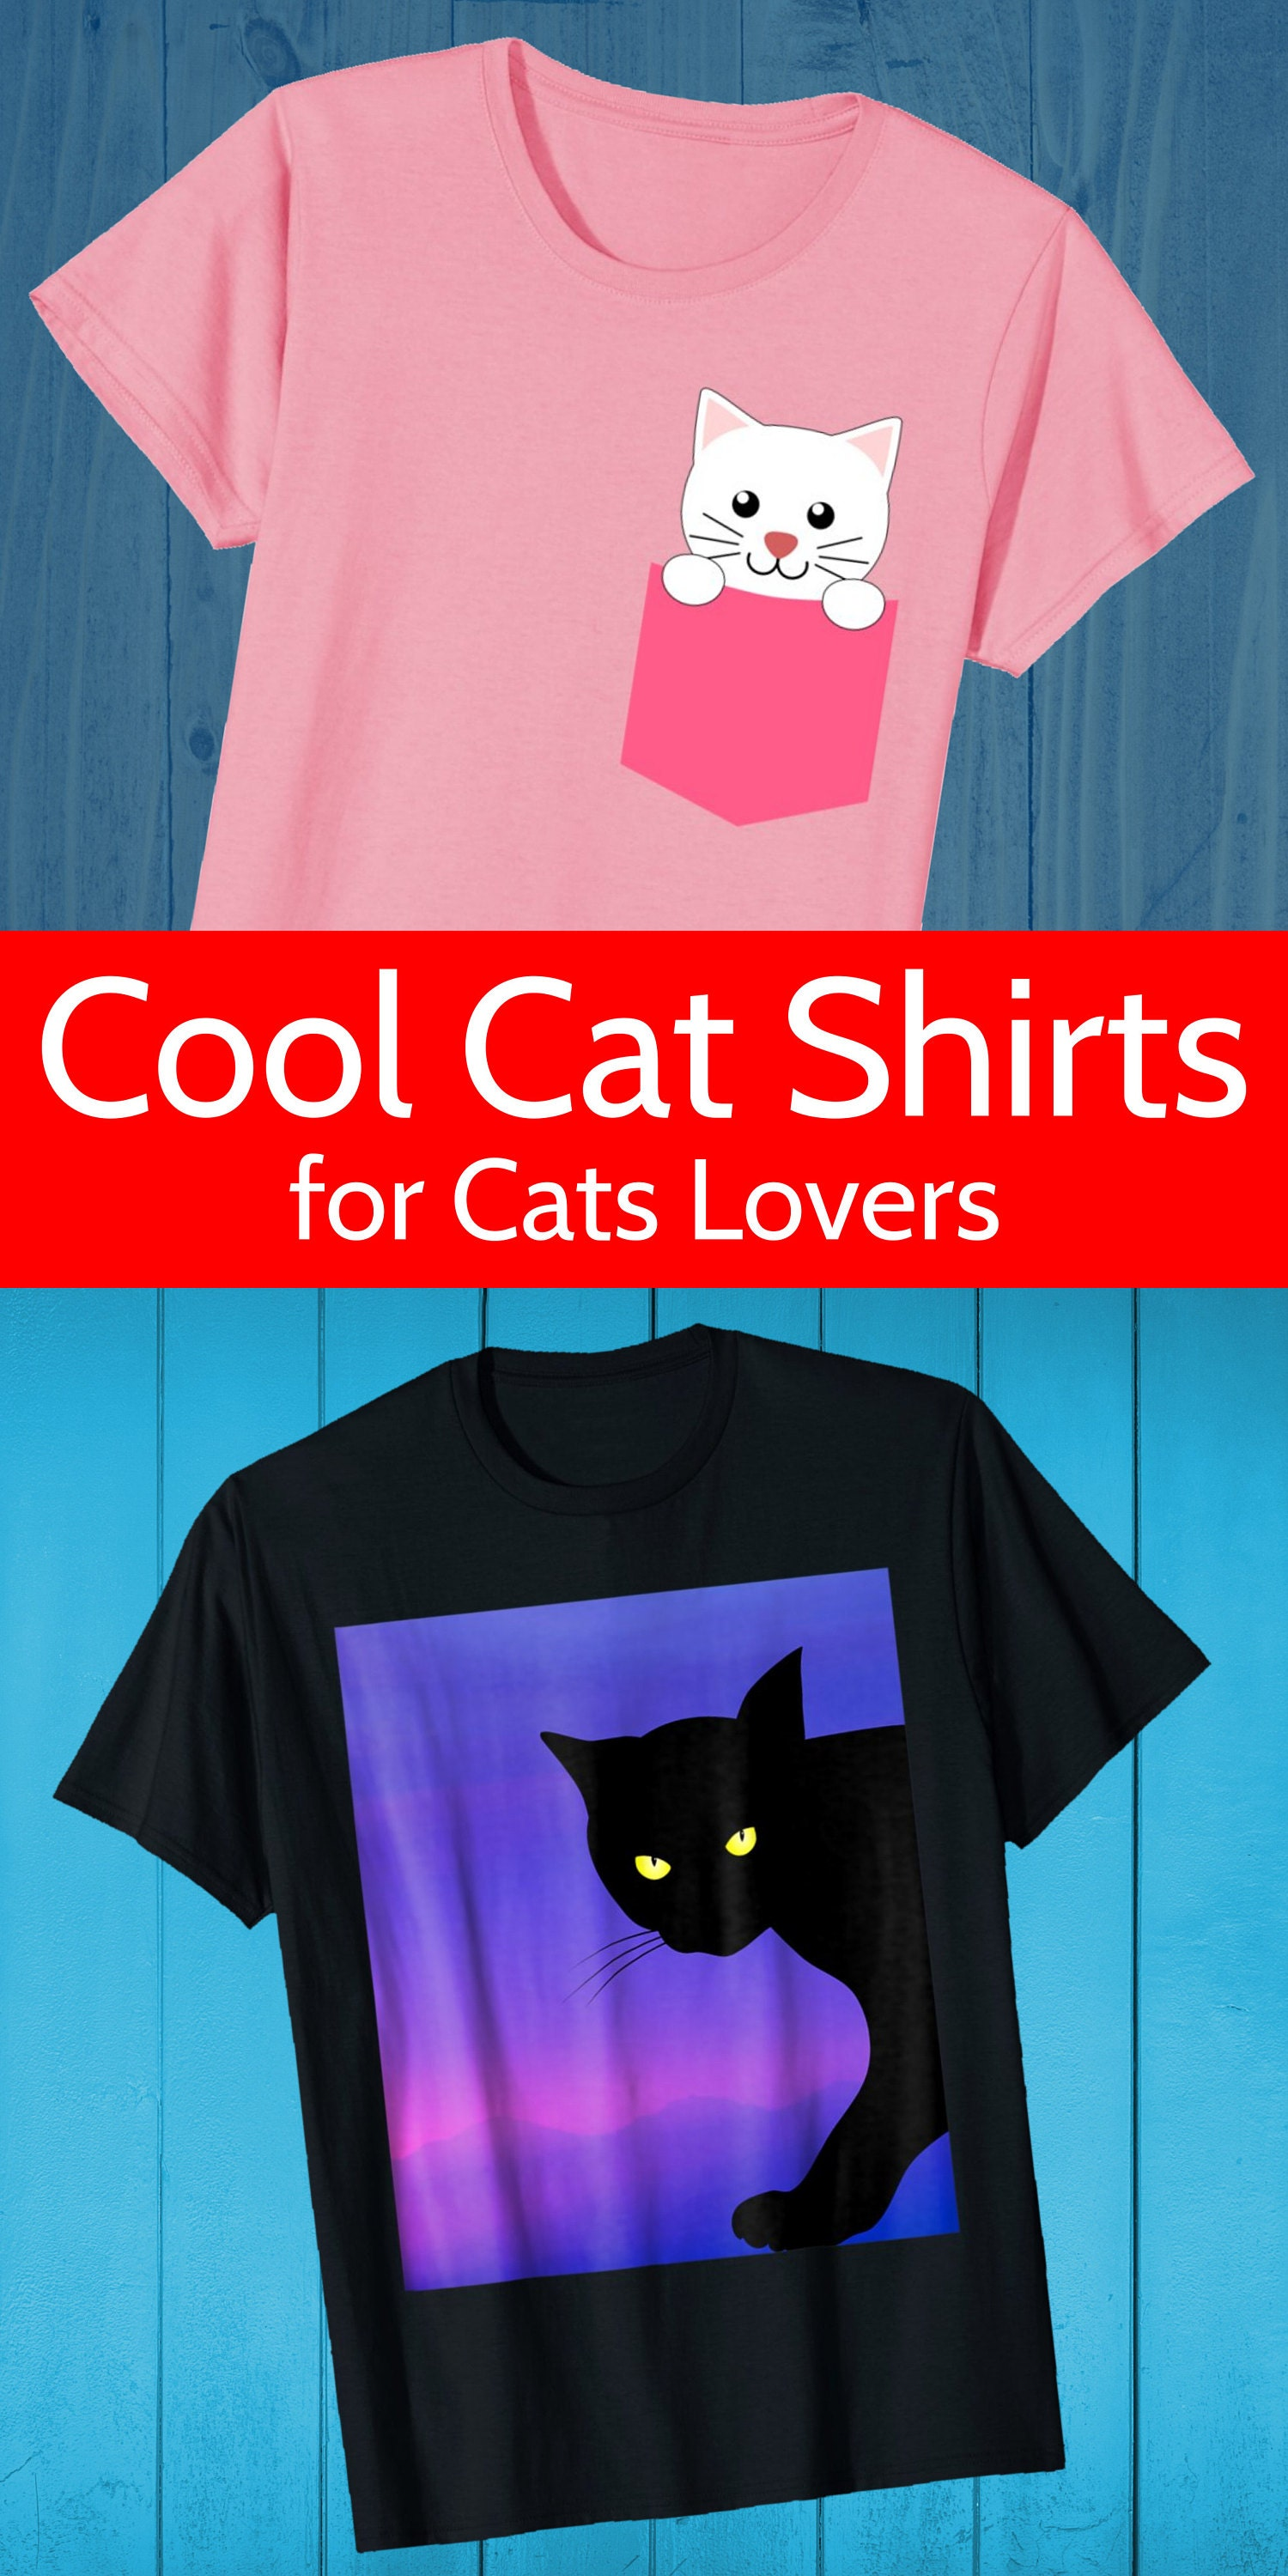 Cat shirts for cat lovers